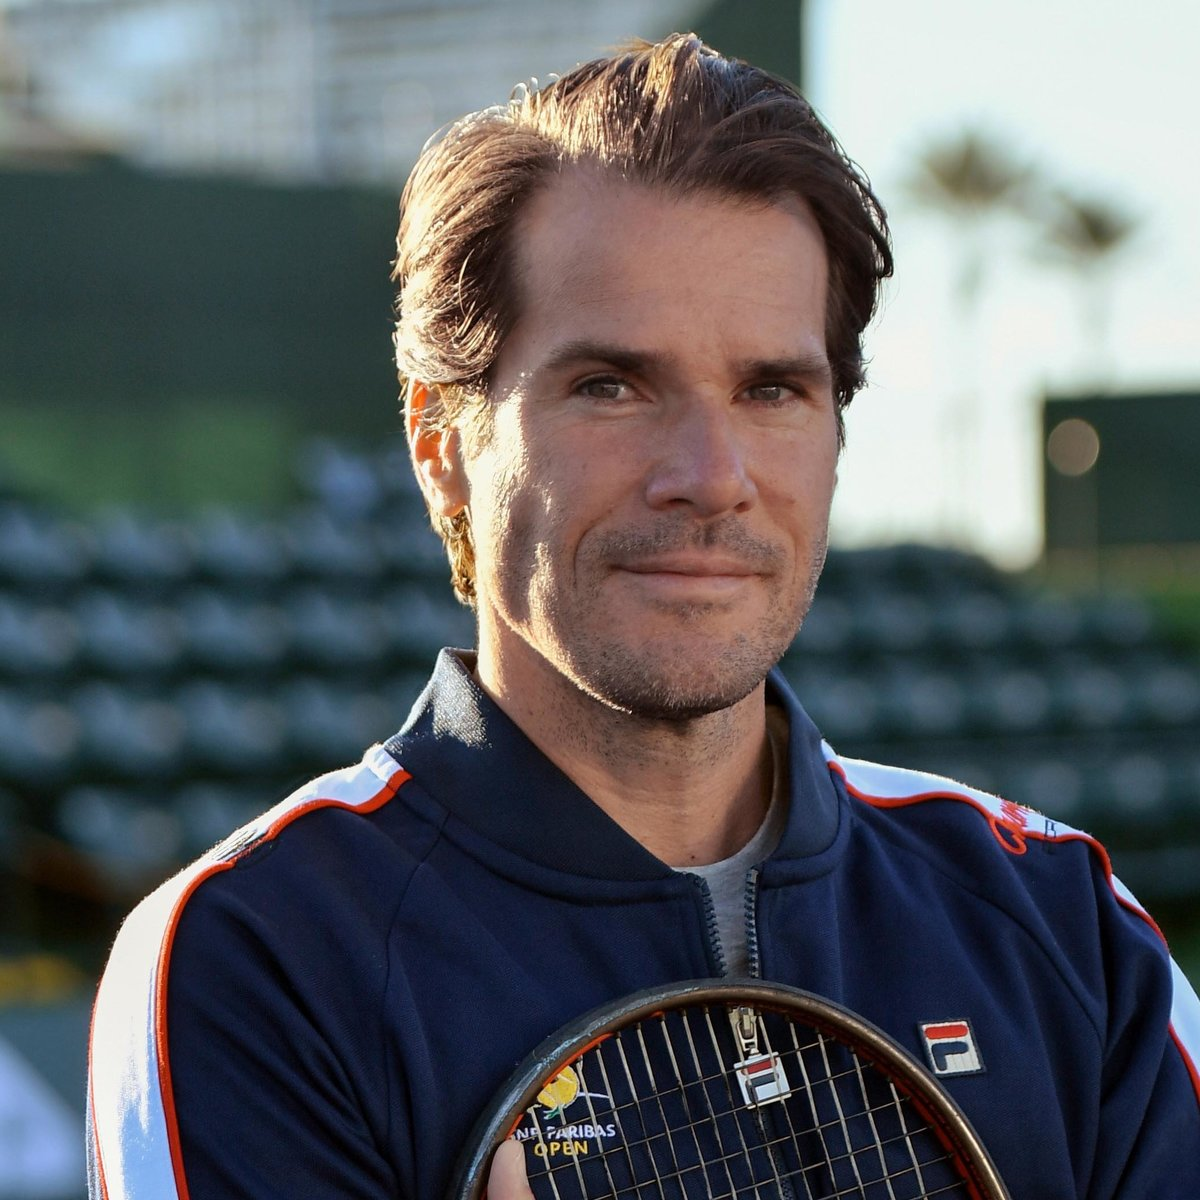 Charlie feat. Tommy Haas